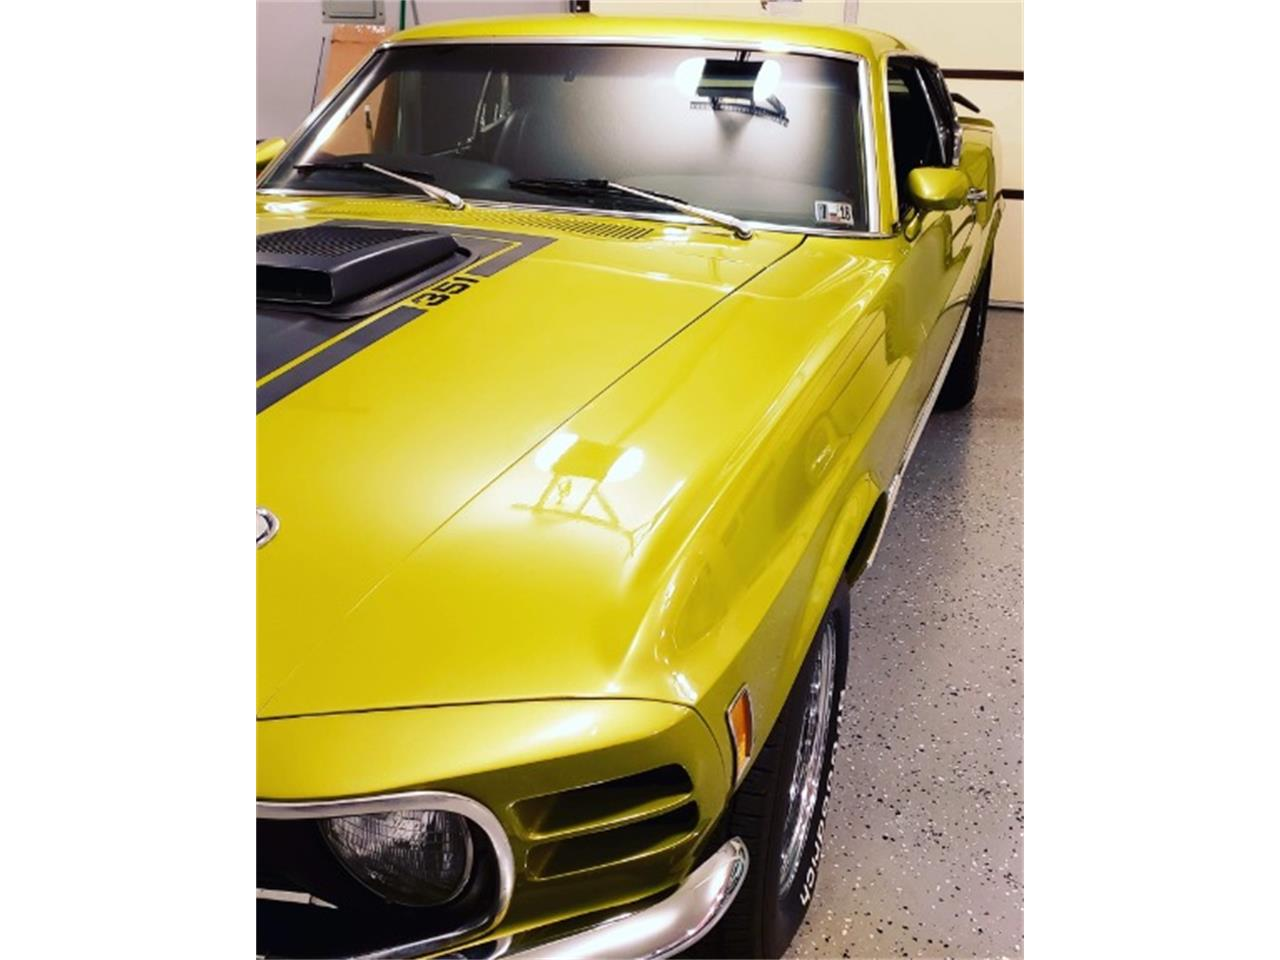 Large Picture of Classic 1970 Ford Mustang located in Mundelein Illinois - $46,500.00 Offered by North Shore Classics - QIDR